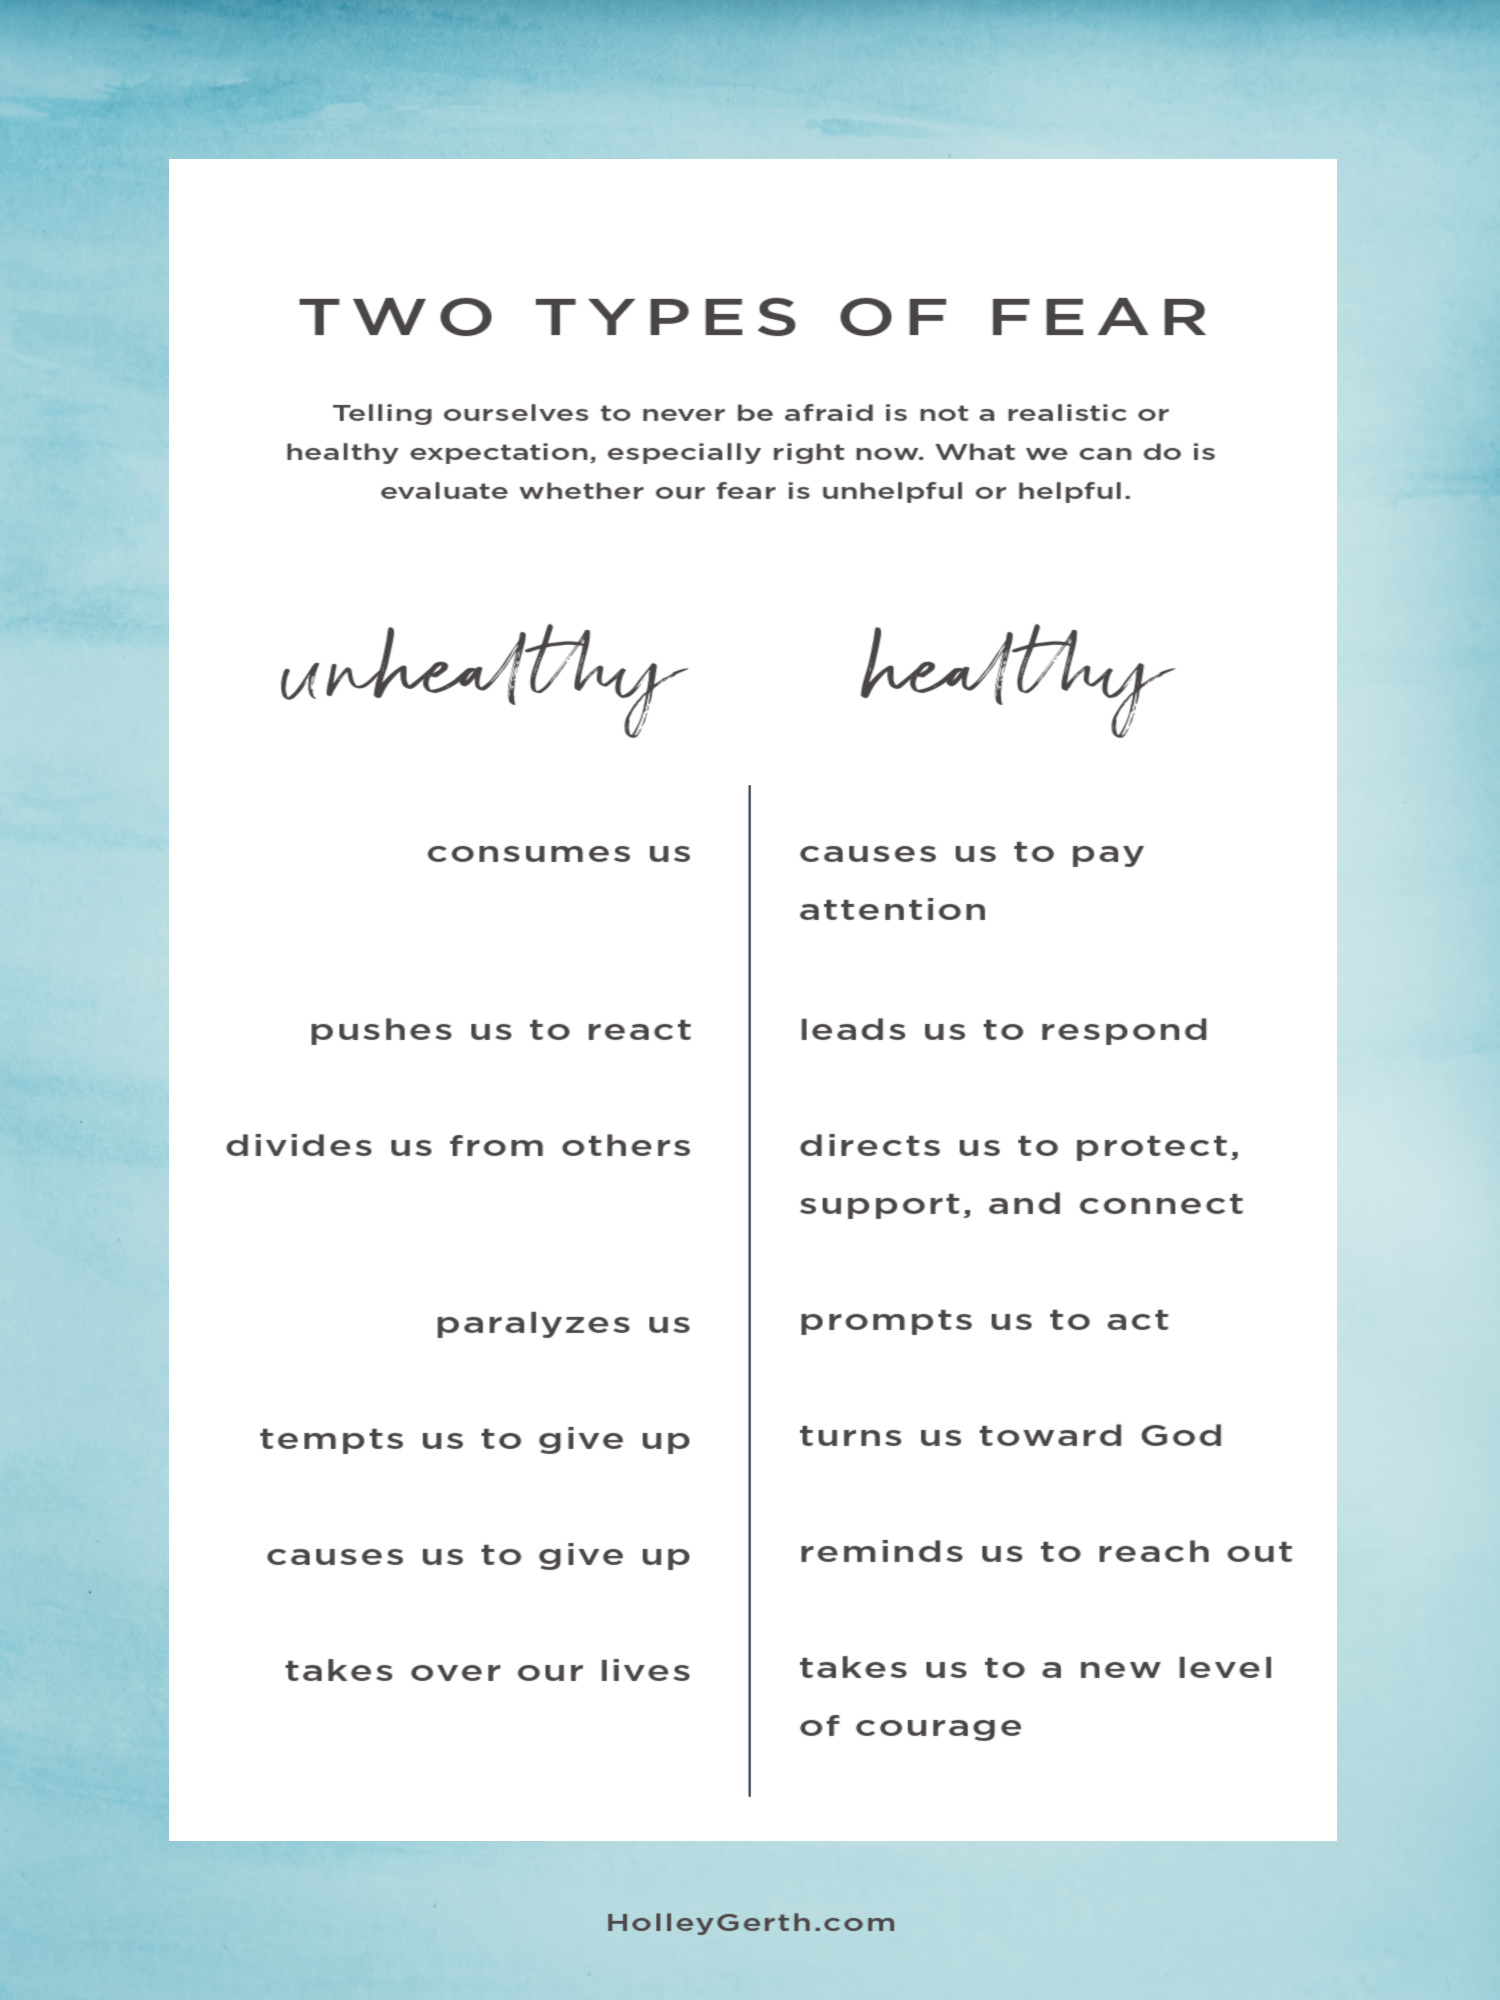 Fear is not always bad, but there is healthy fear and unhealthy fear.